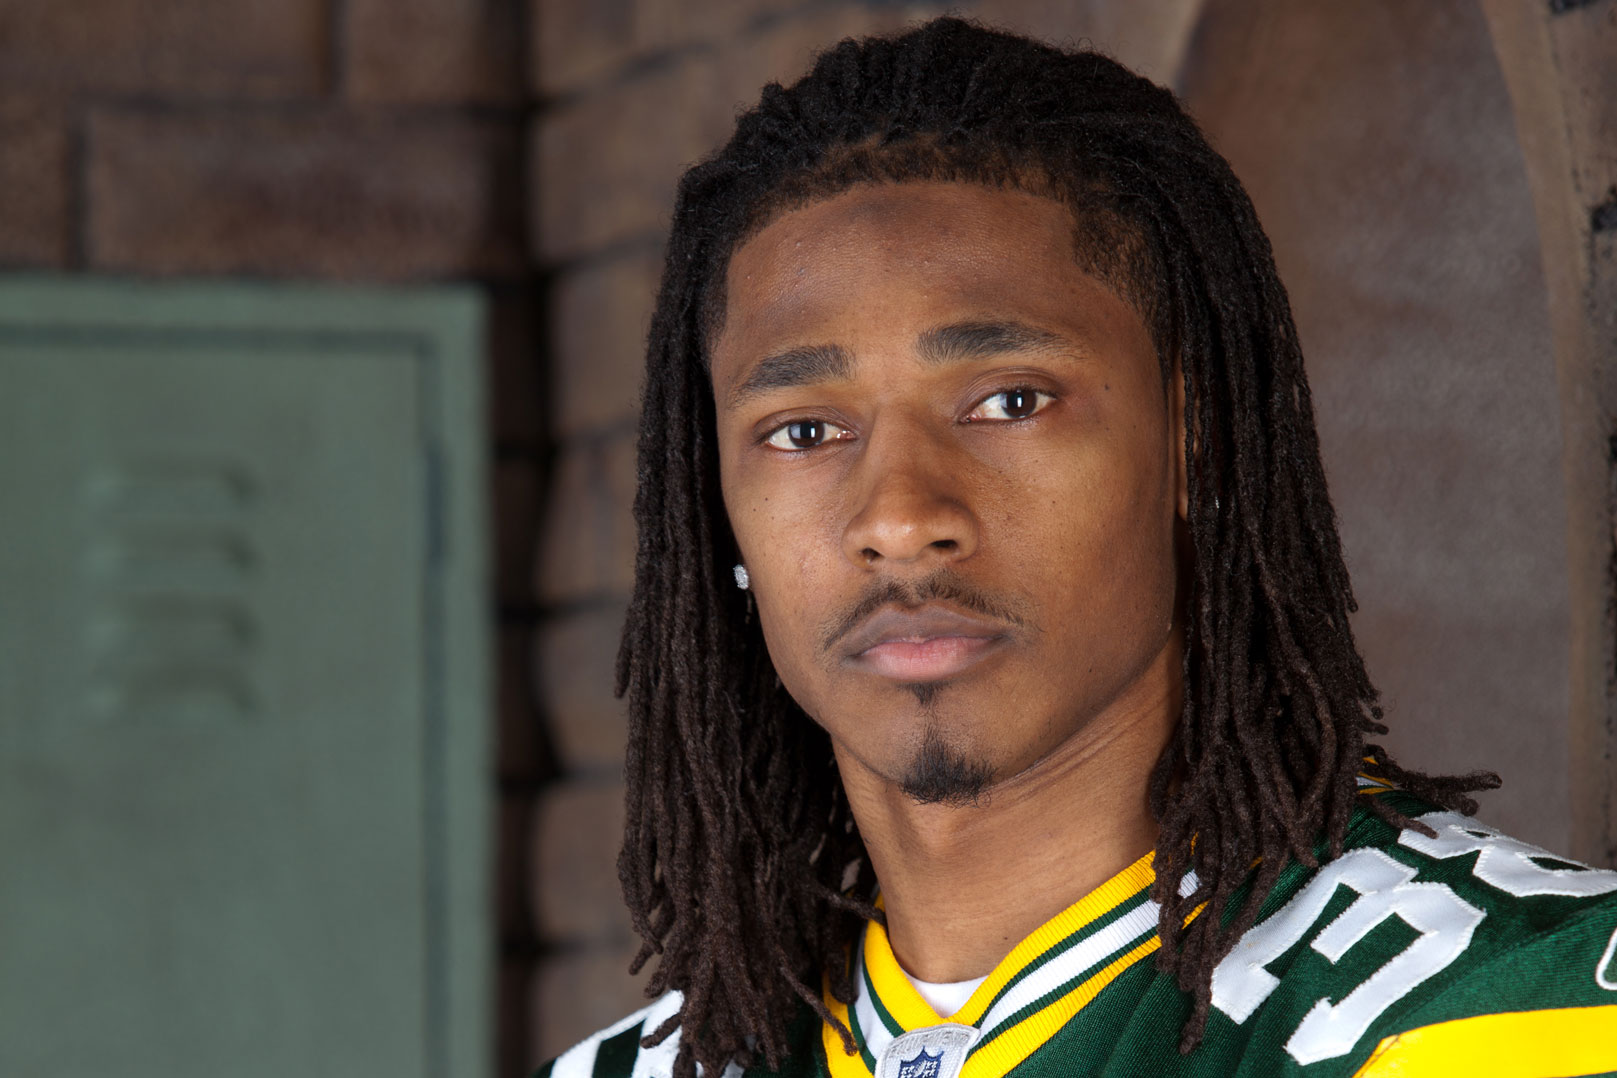 Seen here in an oddly prophetic senior picture, Tramon Williams was once a star in the secondary. Can he regain his 2010 form?